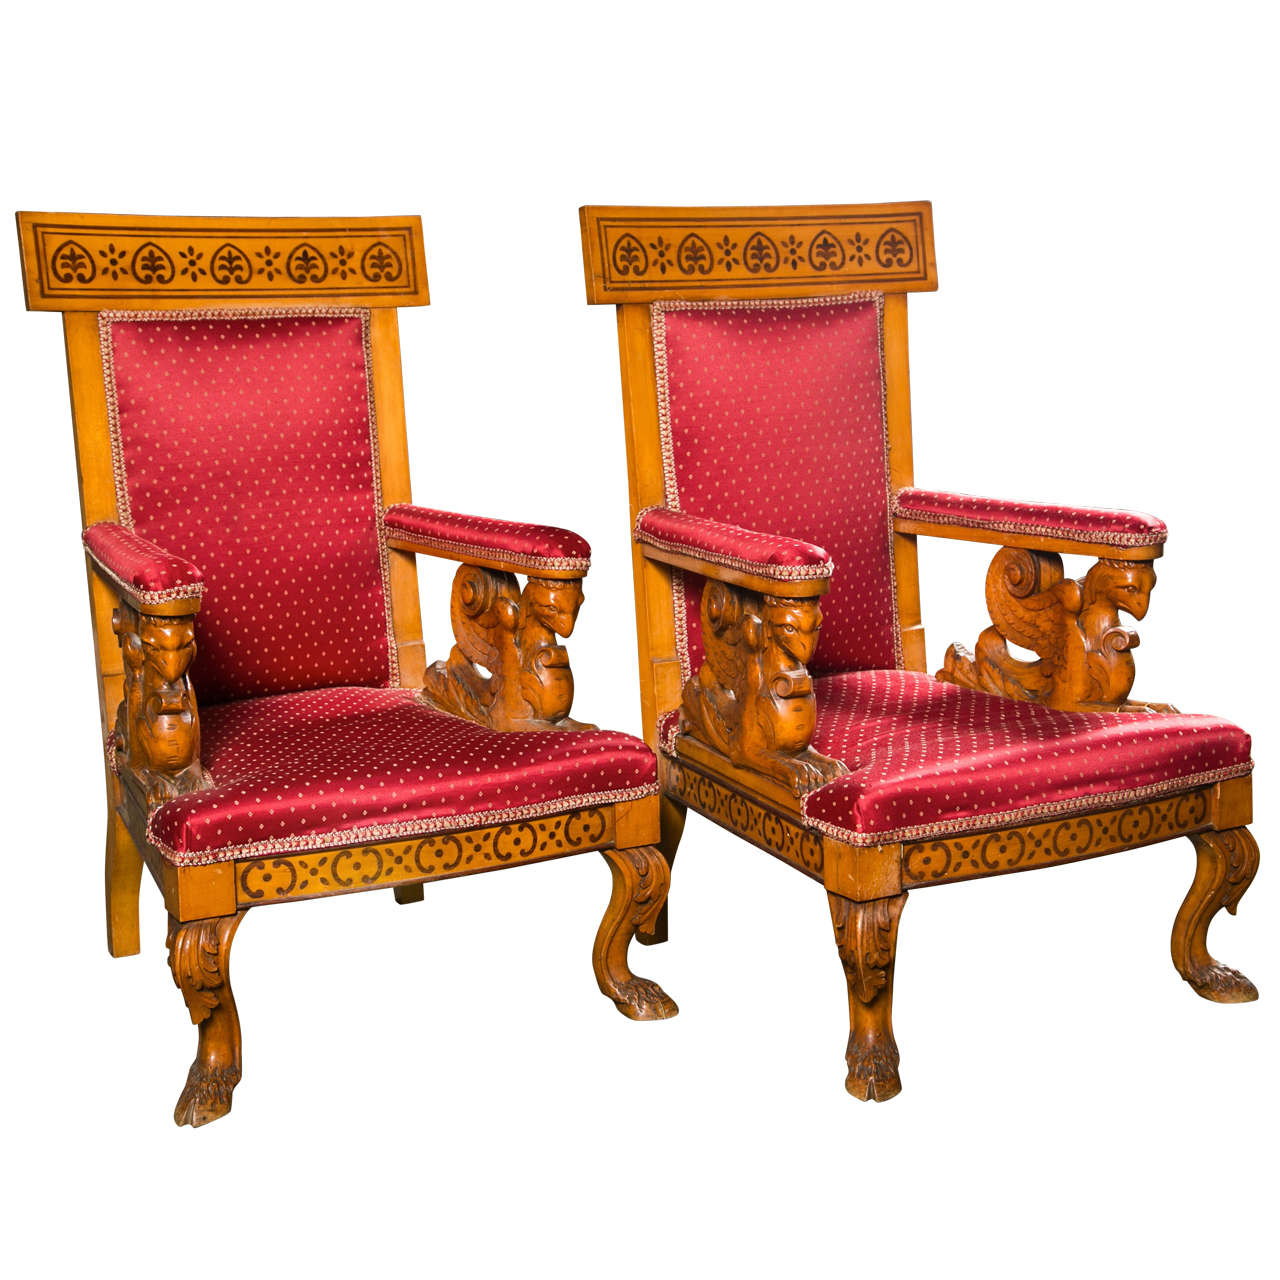 Pair of italian charles x armchairs circa 1825 at 1stdibs for Furniture 1825